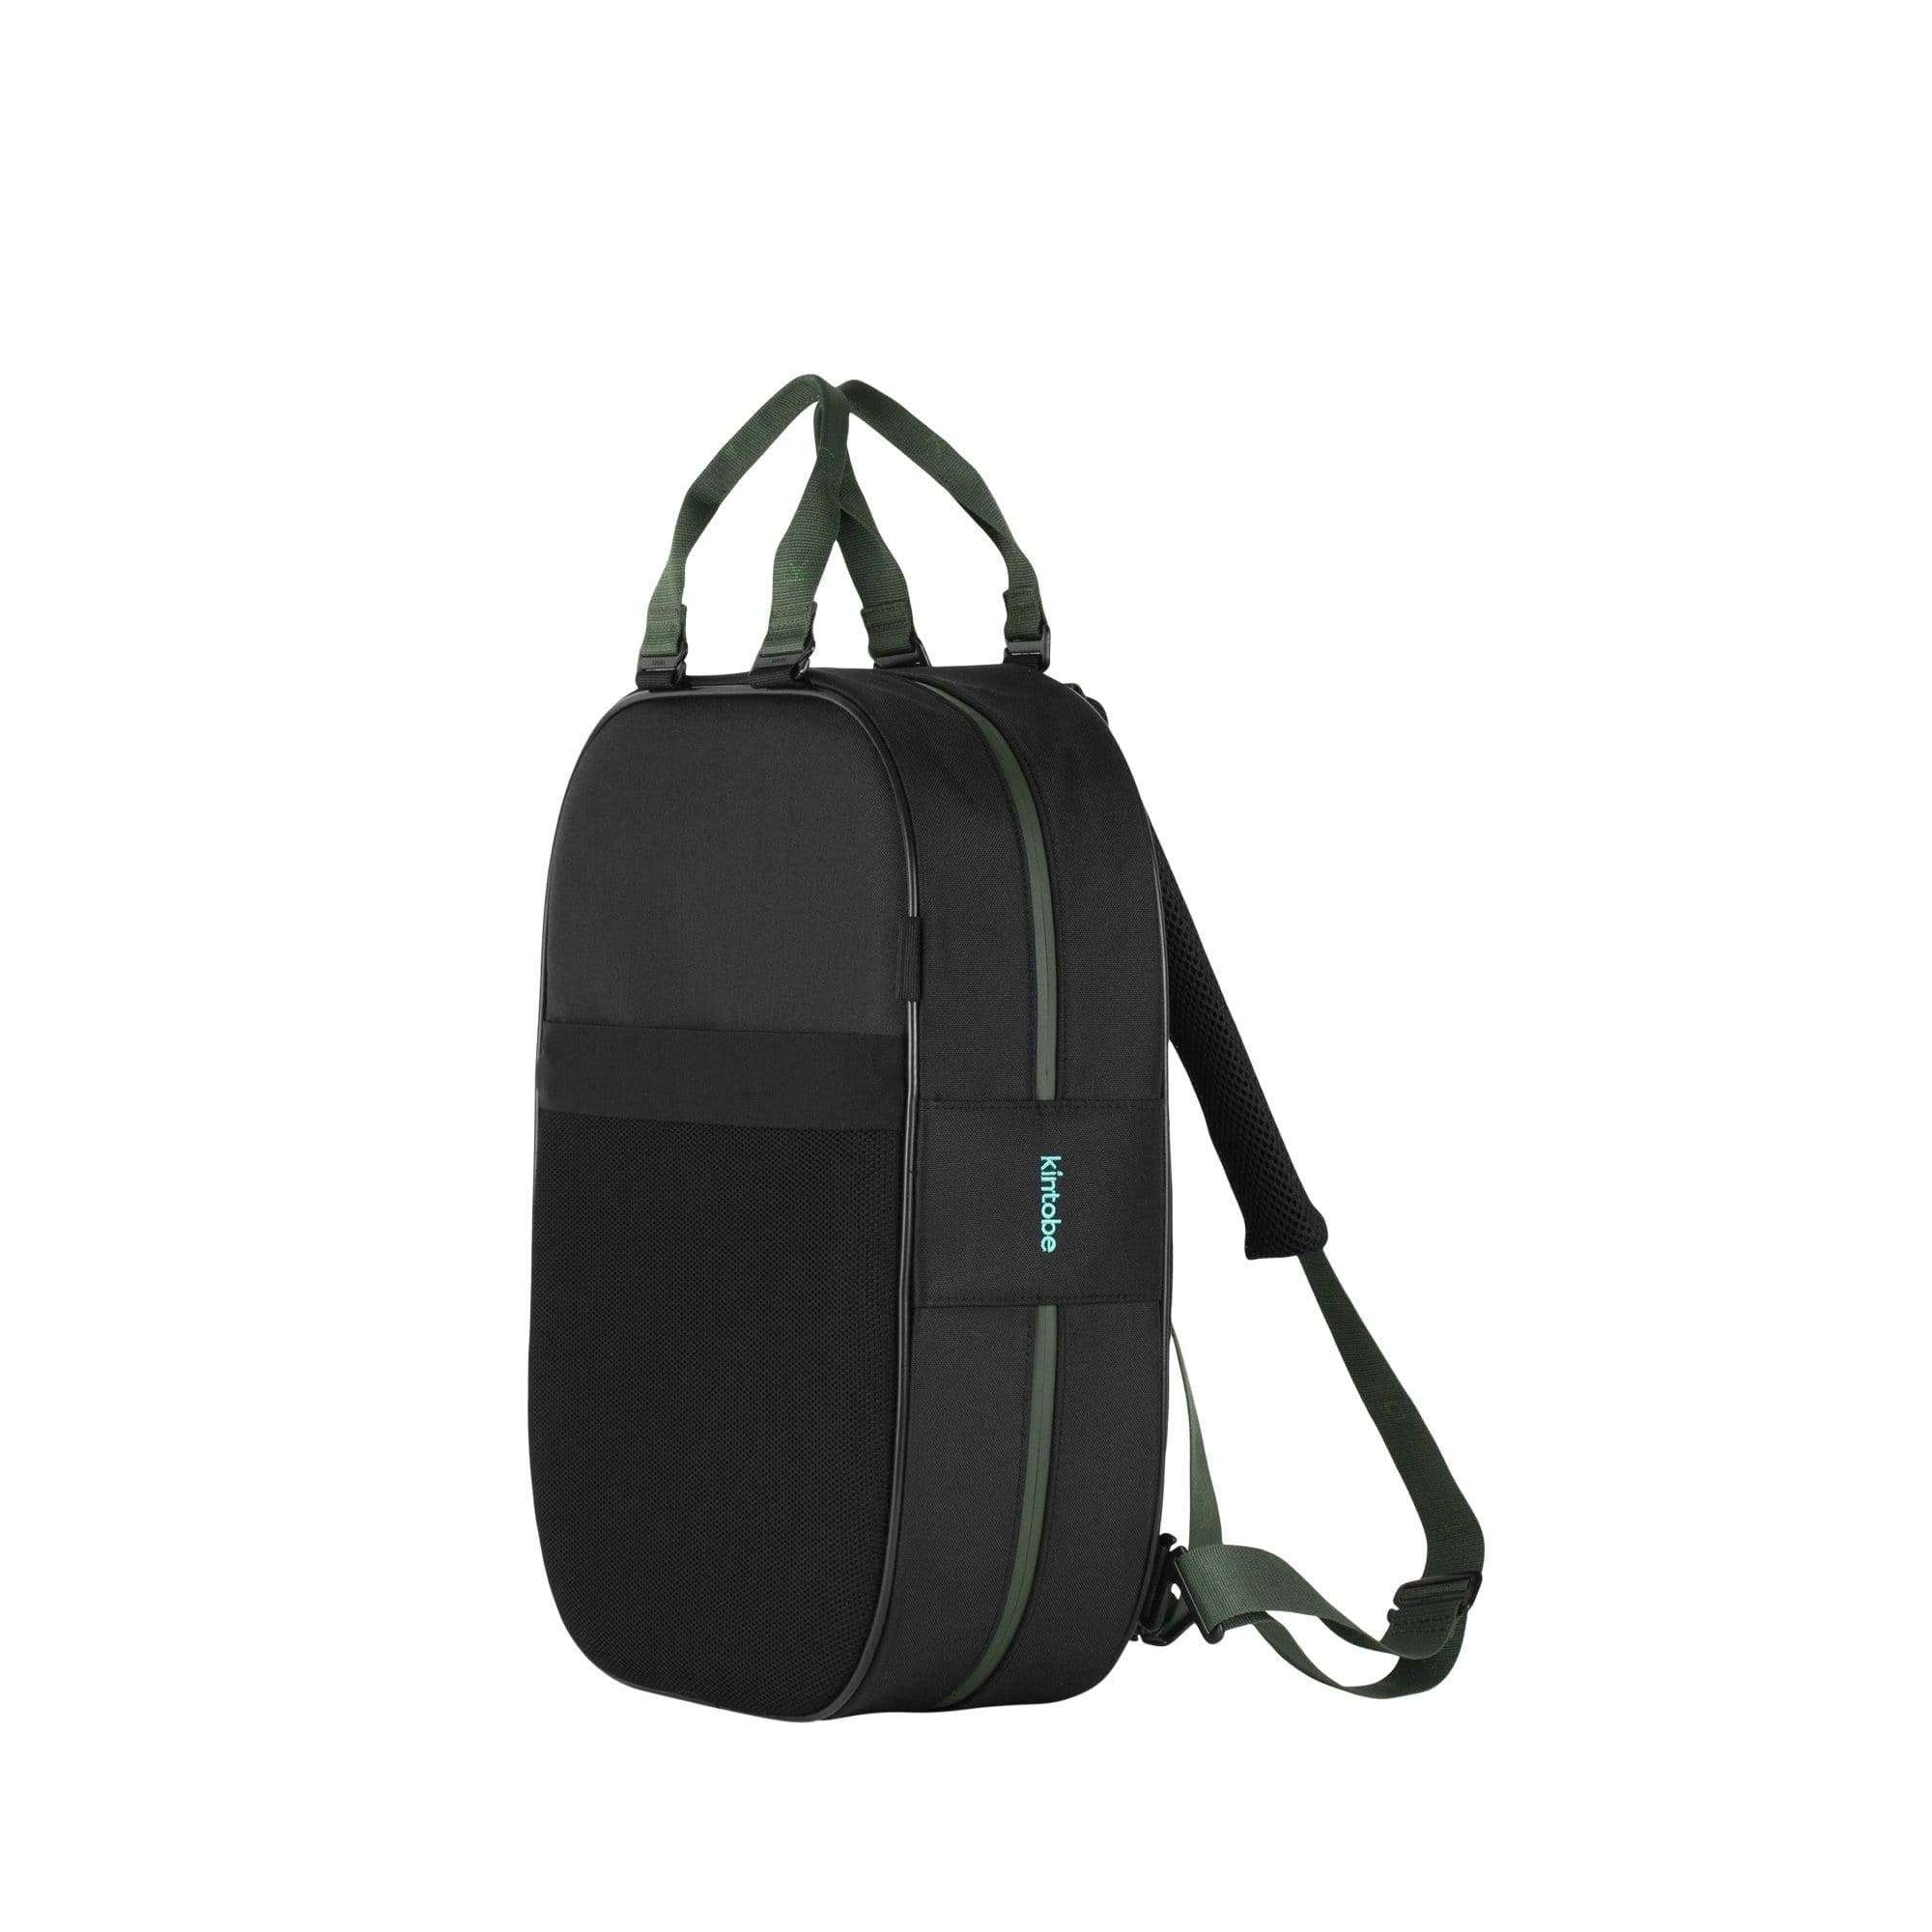 Kintobe Backpacks Green Straps + Black Backpack